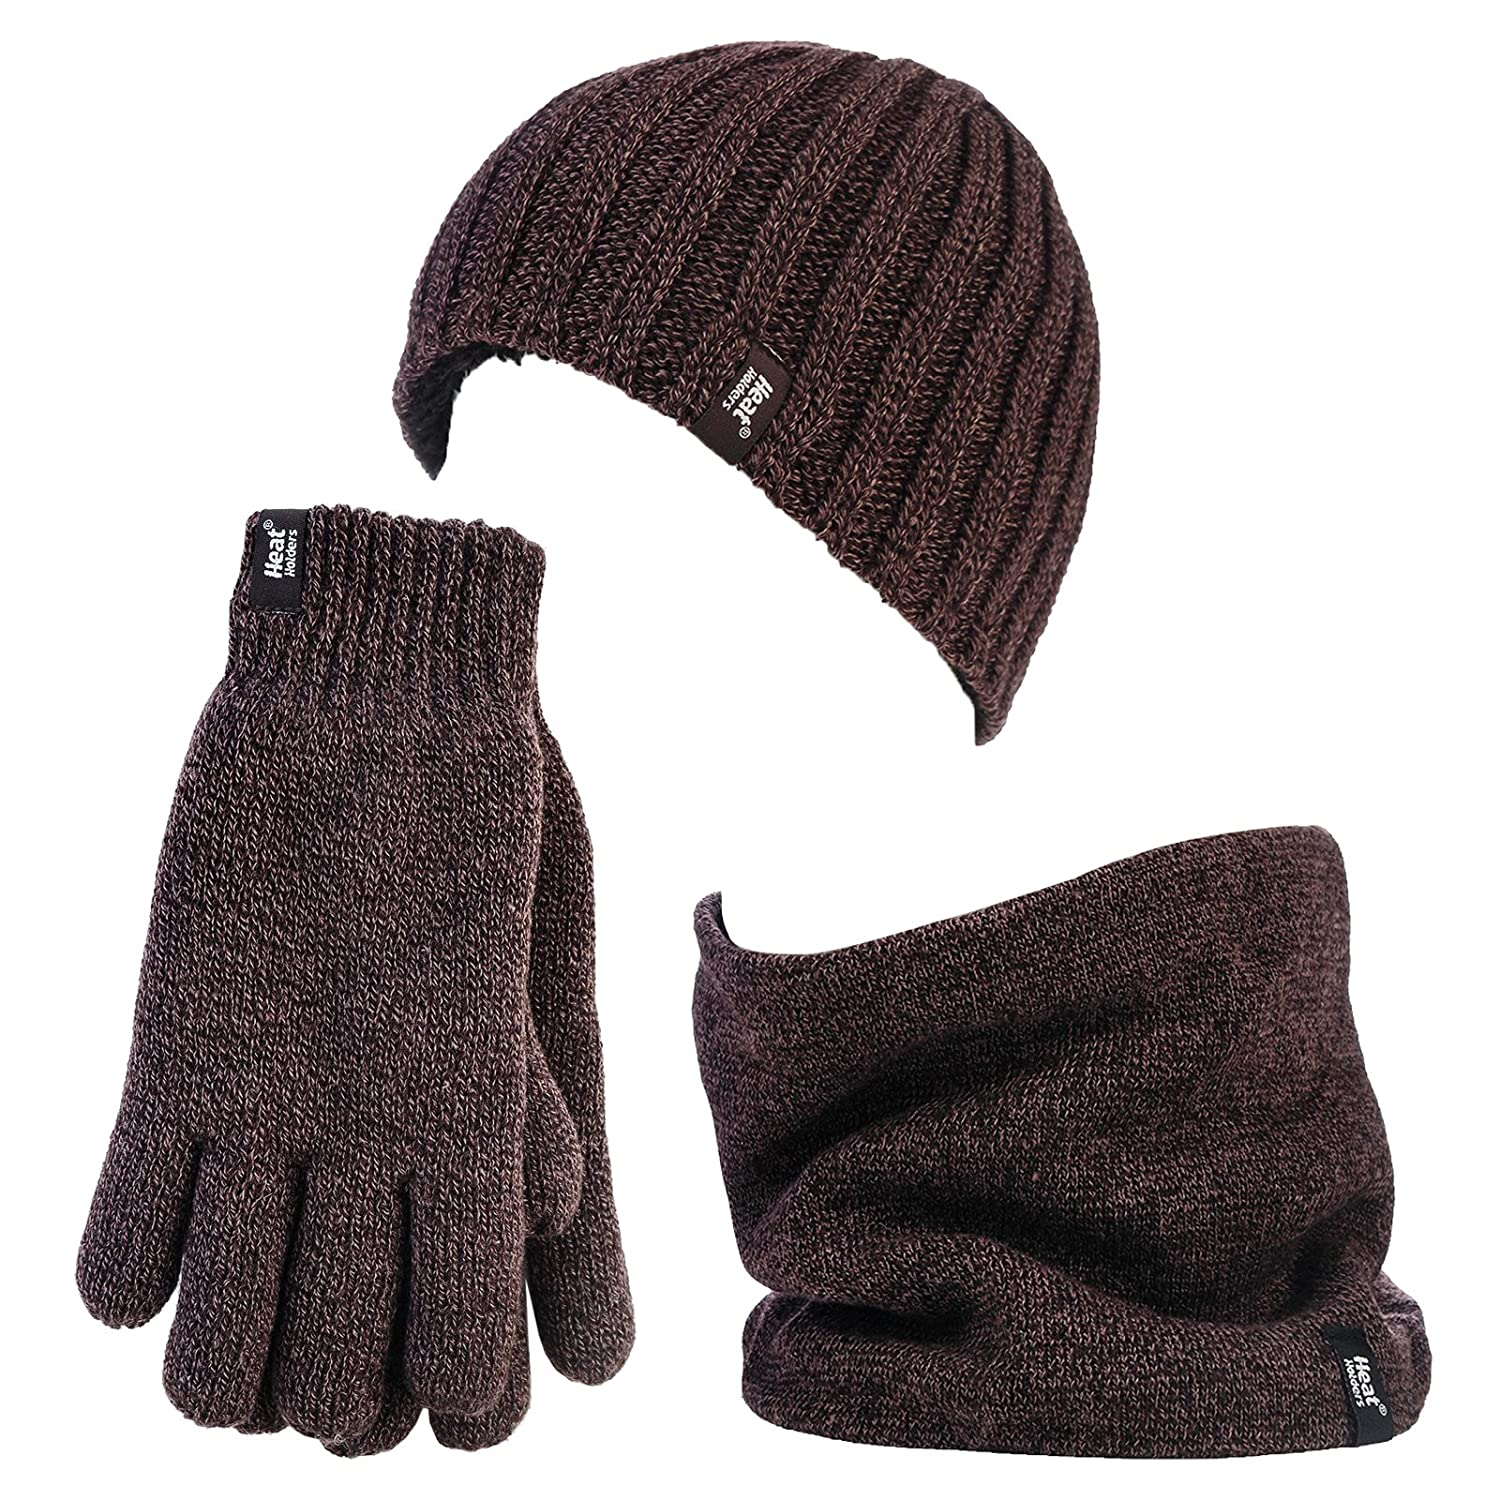 Heat Holders - Thermal Cable knit Hat, Neck Warmer and Gloves set for Men